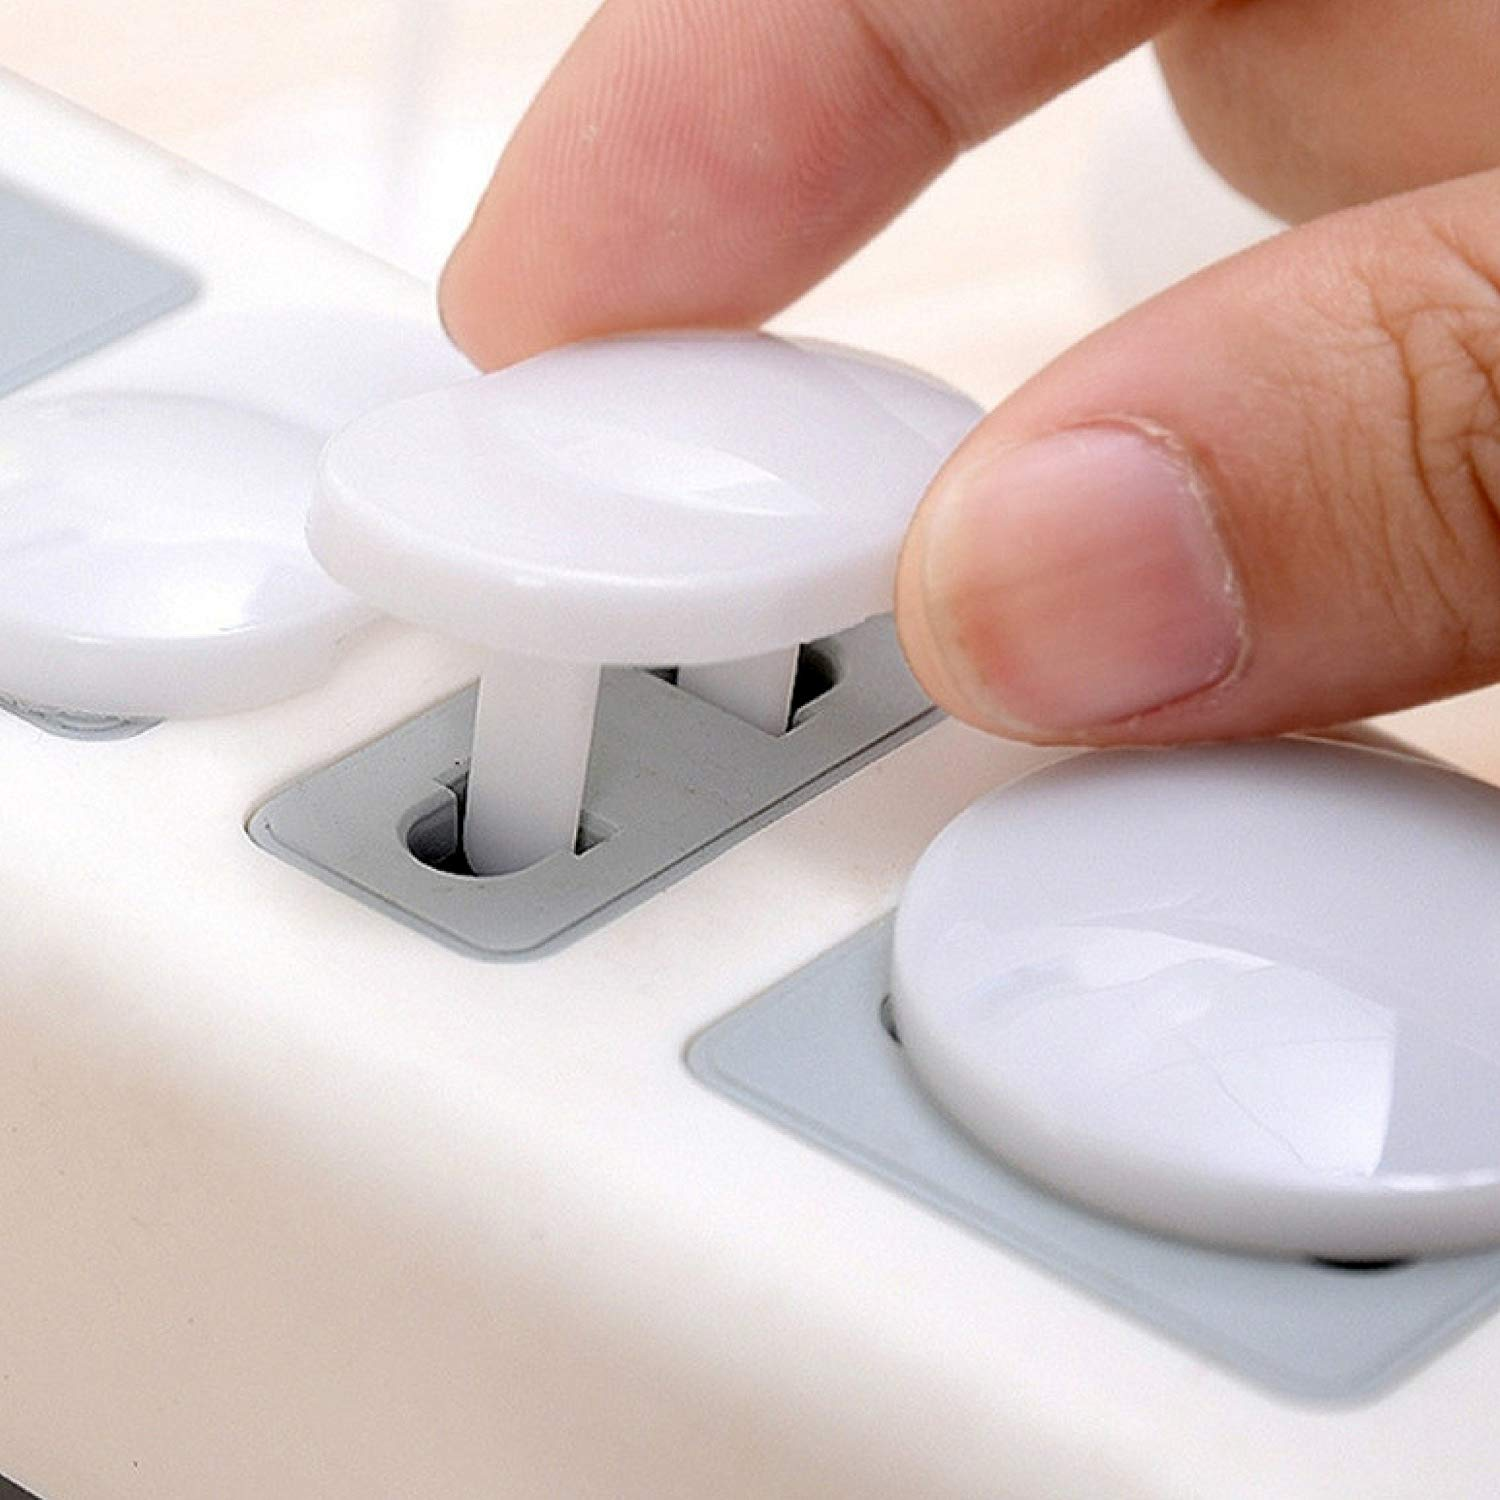 40pcs Plug Cover, Socket Plug Cover, Baby Proof  For Baby Protection Electrical